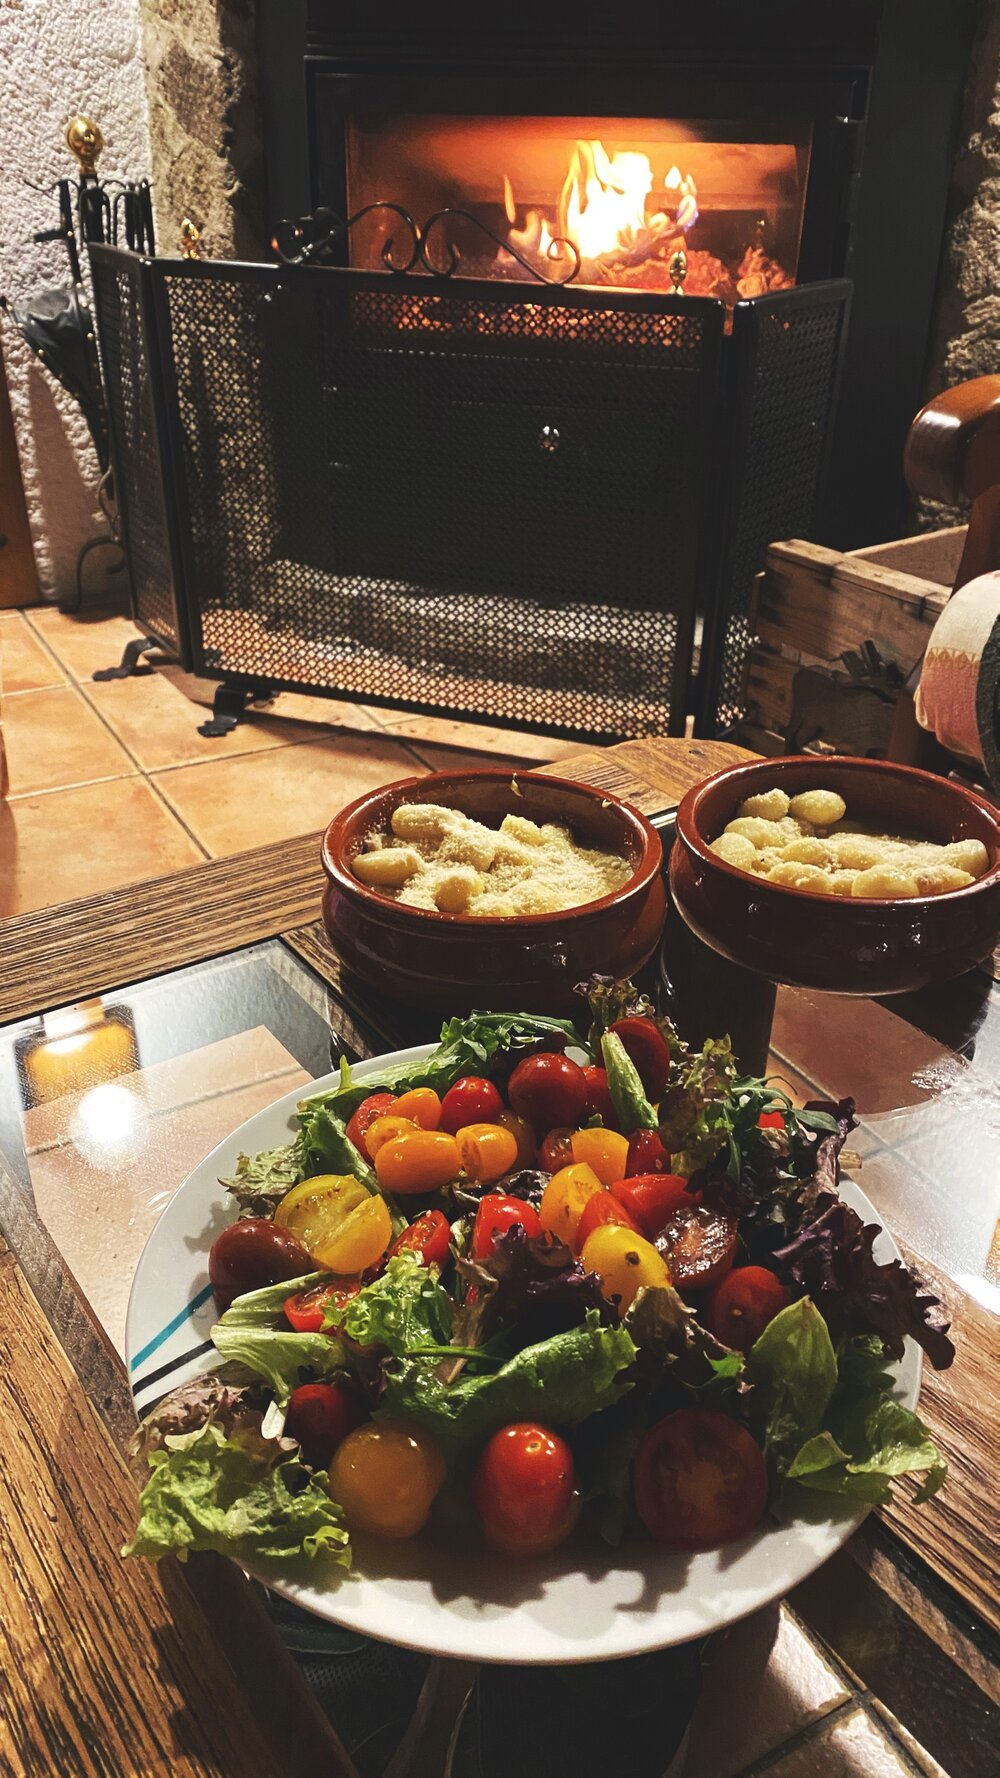 Delicious Vegan Meal Ideas for Camping, Backpacking or Taking to a Cabin or Rented Airbnb